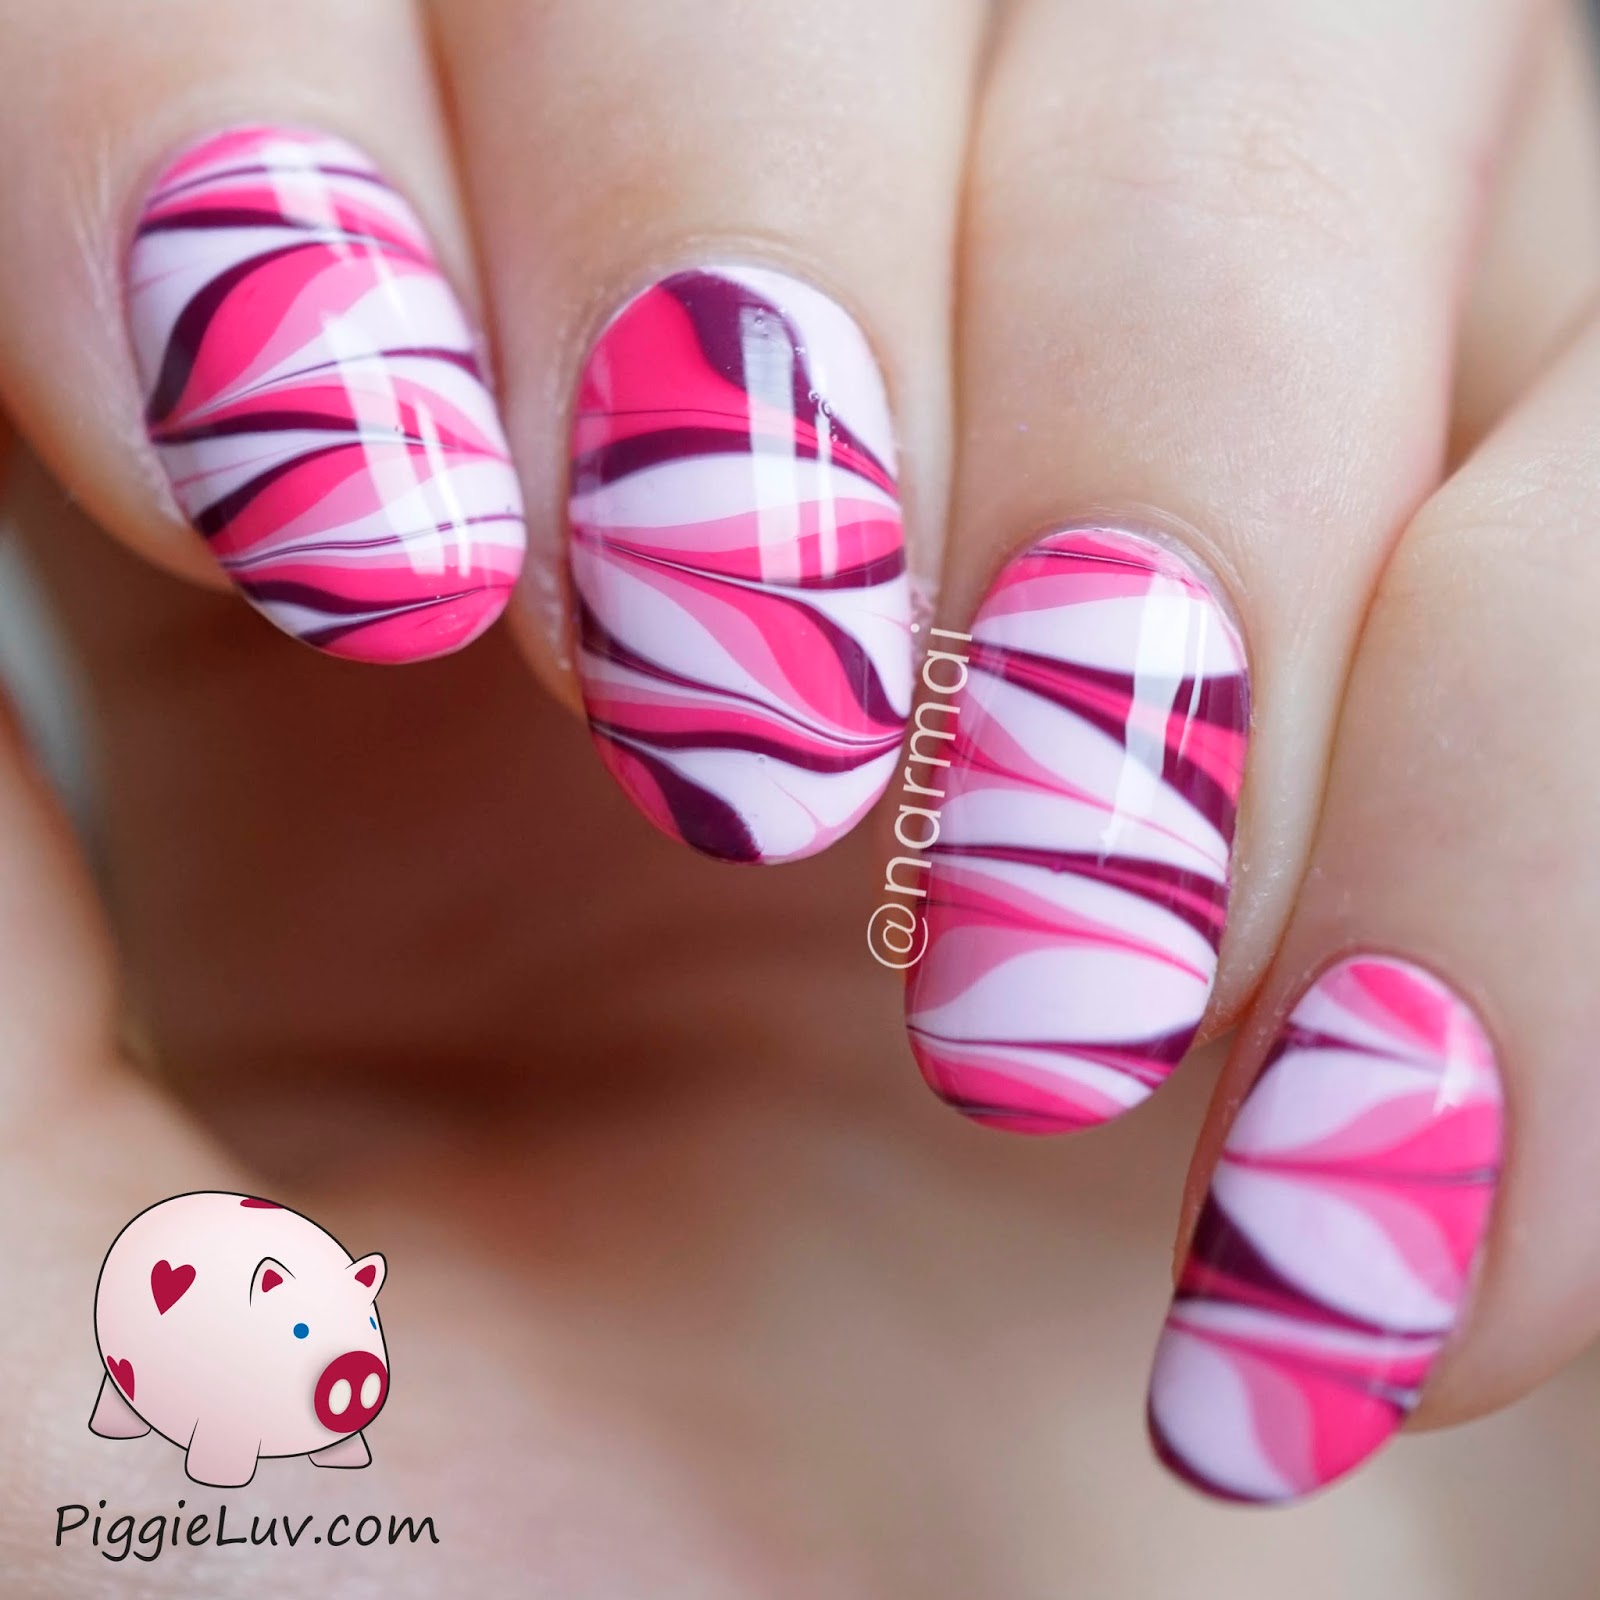 Piggieluv how not to do water marble nail art hpb new to you how not to do water marble nail art hpb new to you linkup prinsesfo Choice Image